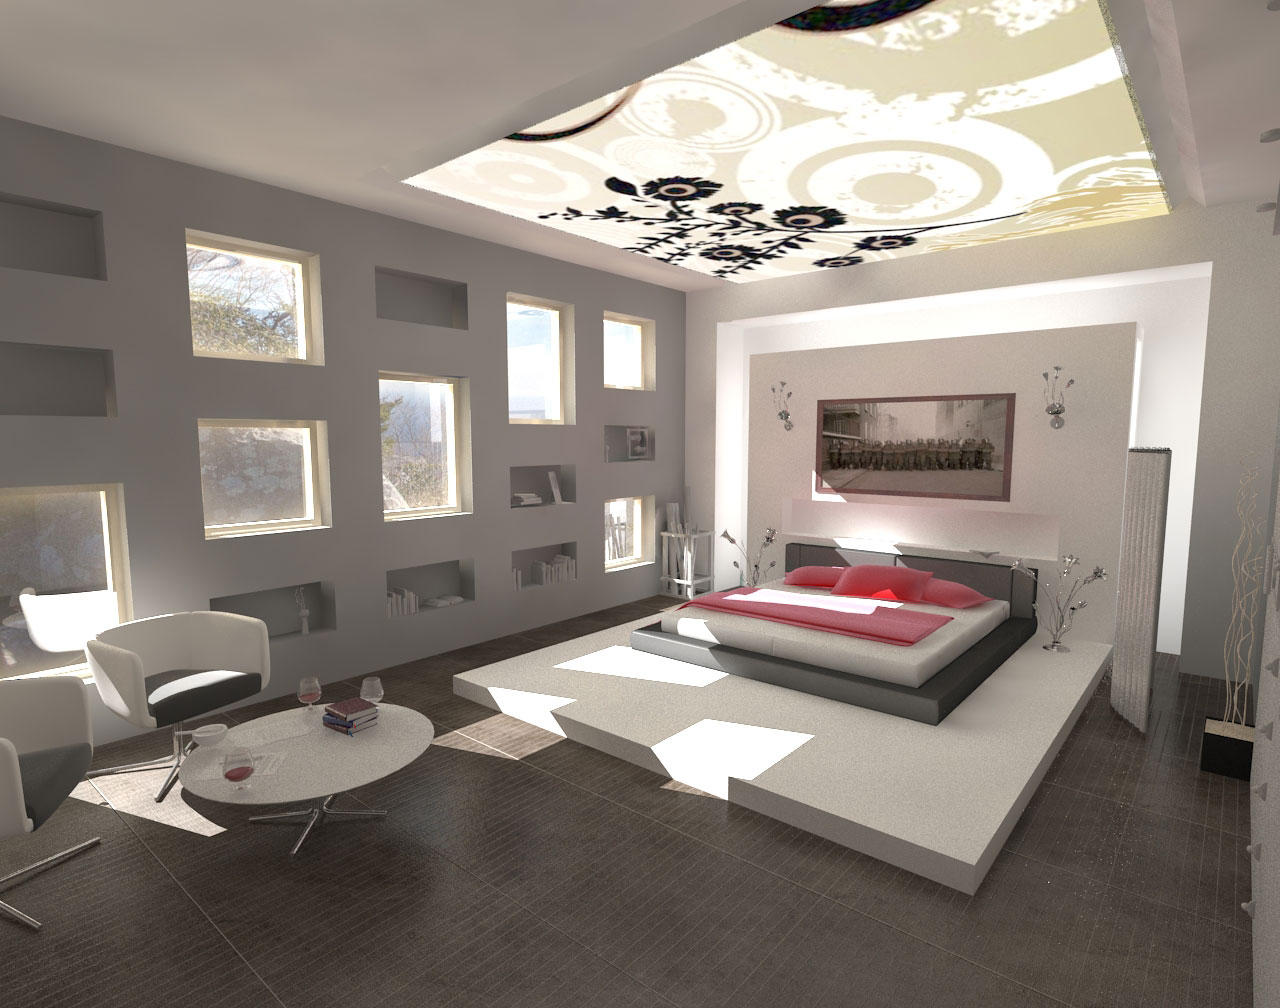 Explore bedroom design